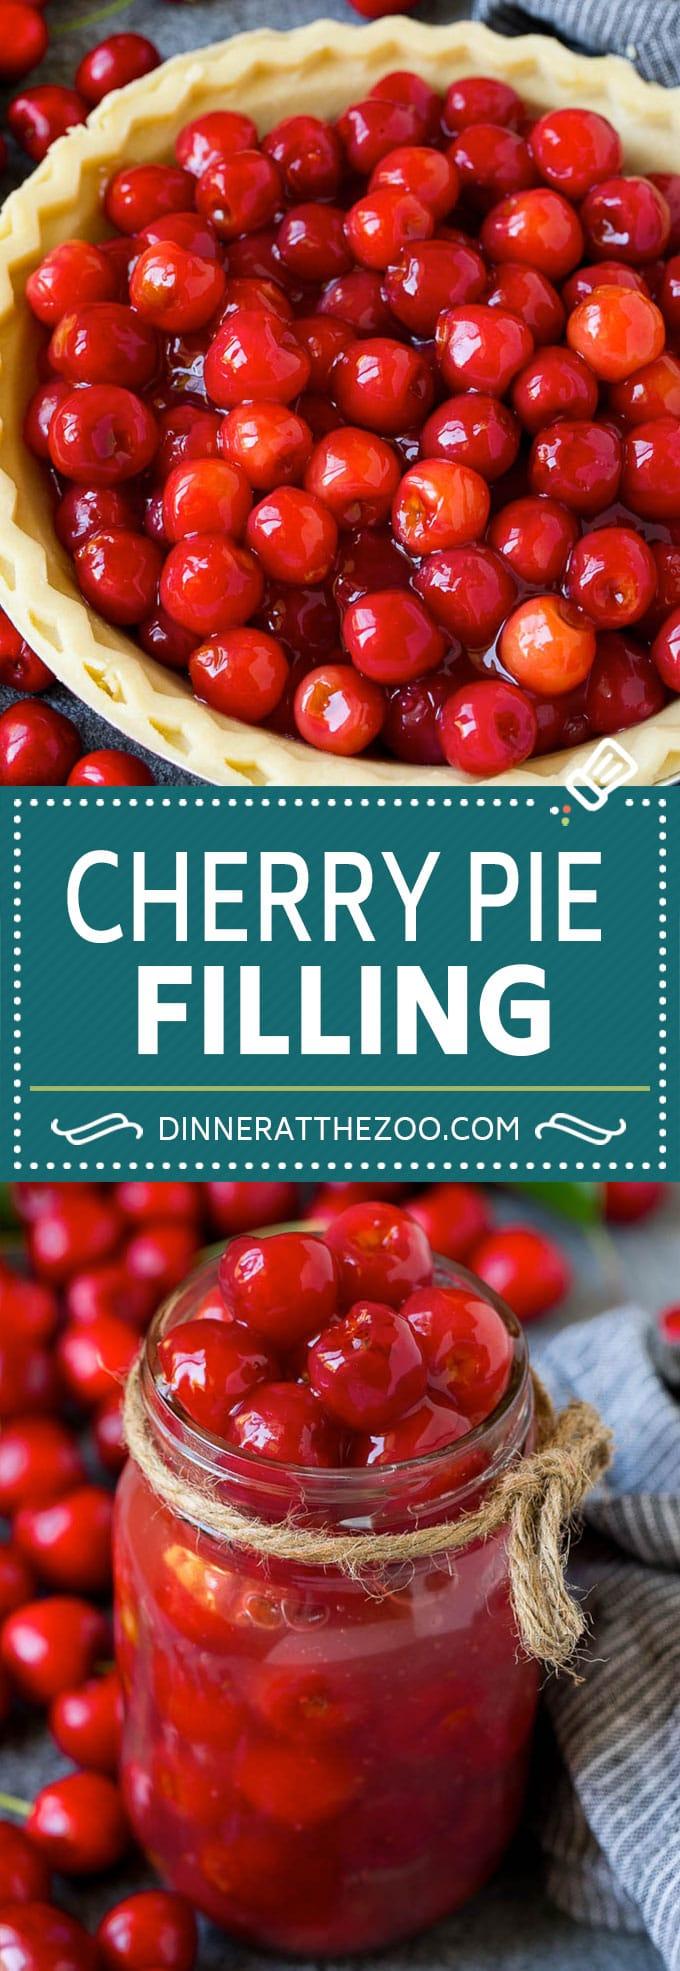 Cherry Pie Filling Recipe #pie #cherries #dessert #sweets #dinneratthezoo #summer